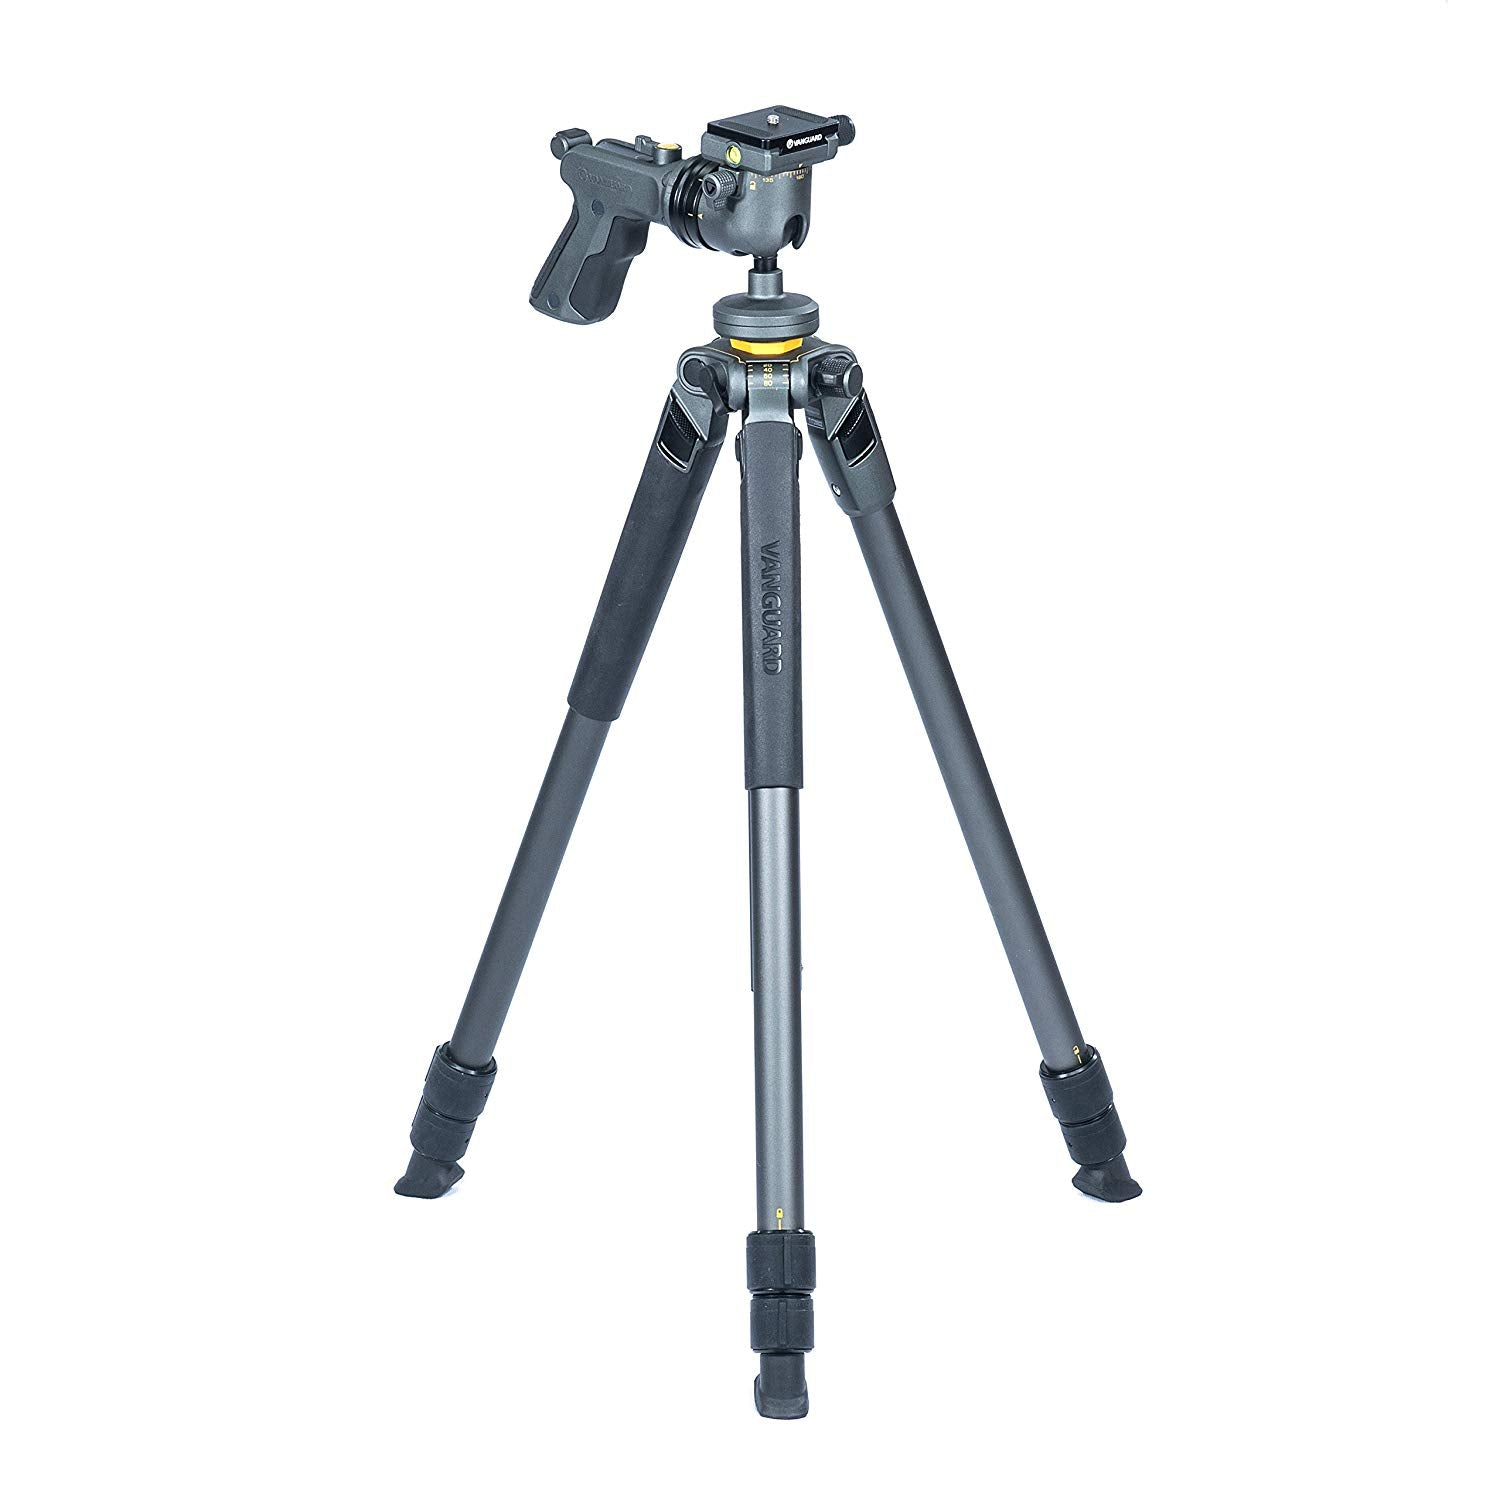 Vanguard ALTA PRO 2 263AGH Aluminum Tripod with GH-100 pistol grip ball head